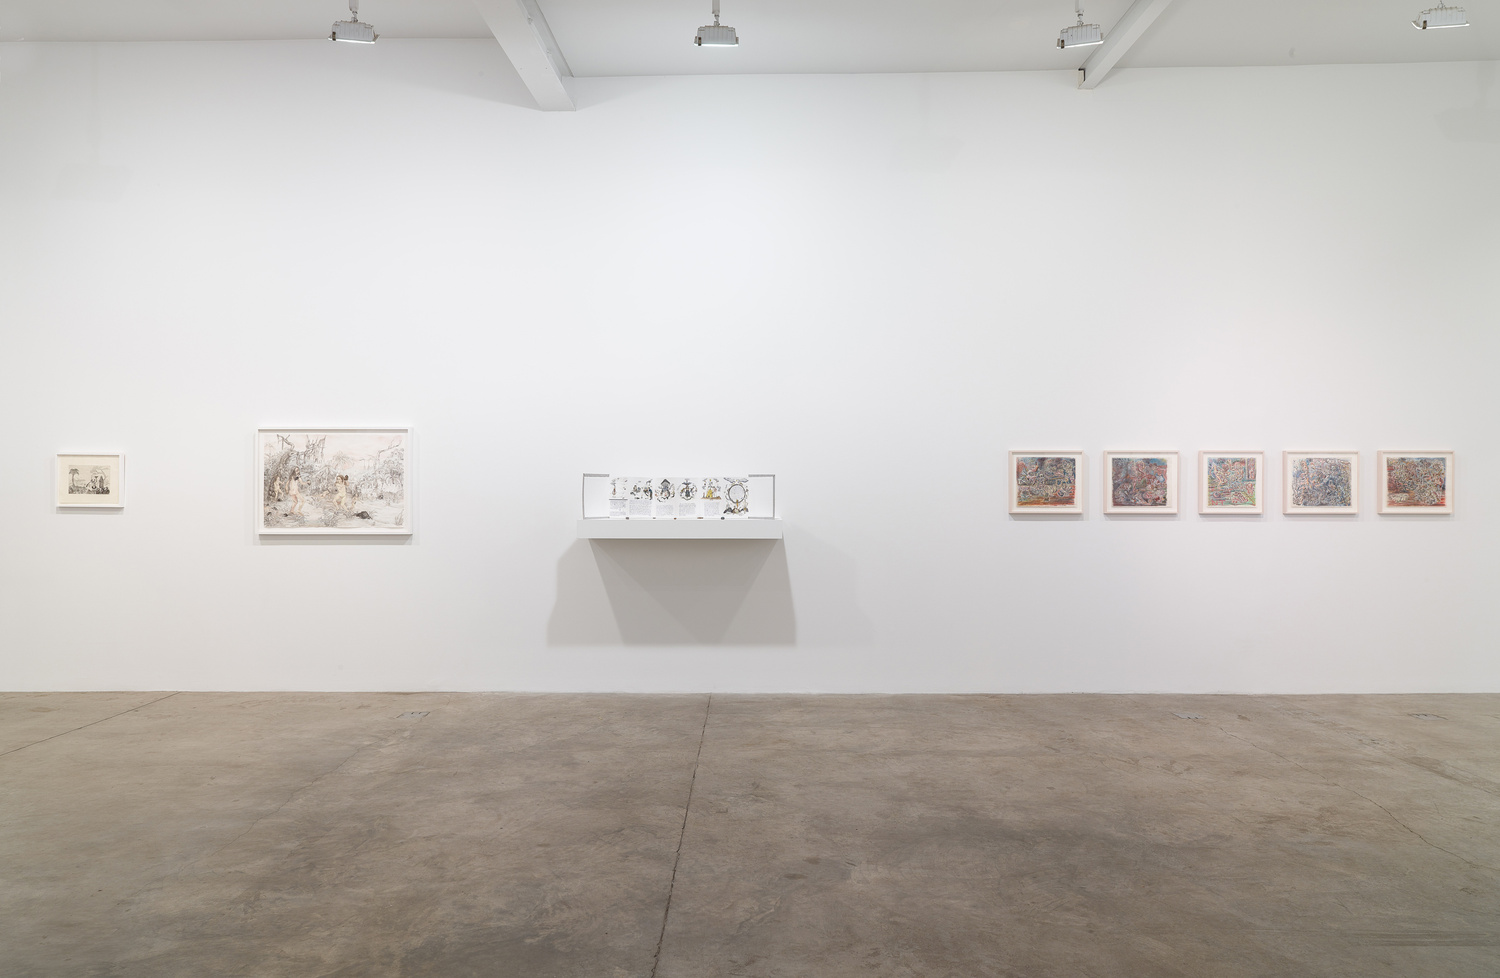 BodilyImaginaries_KoenigAndClinton_2015_Installation_View3_300DPI